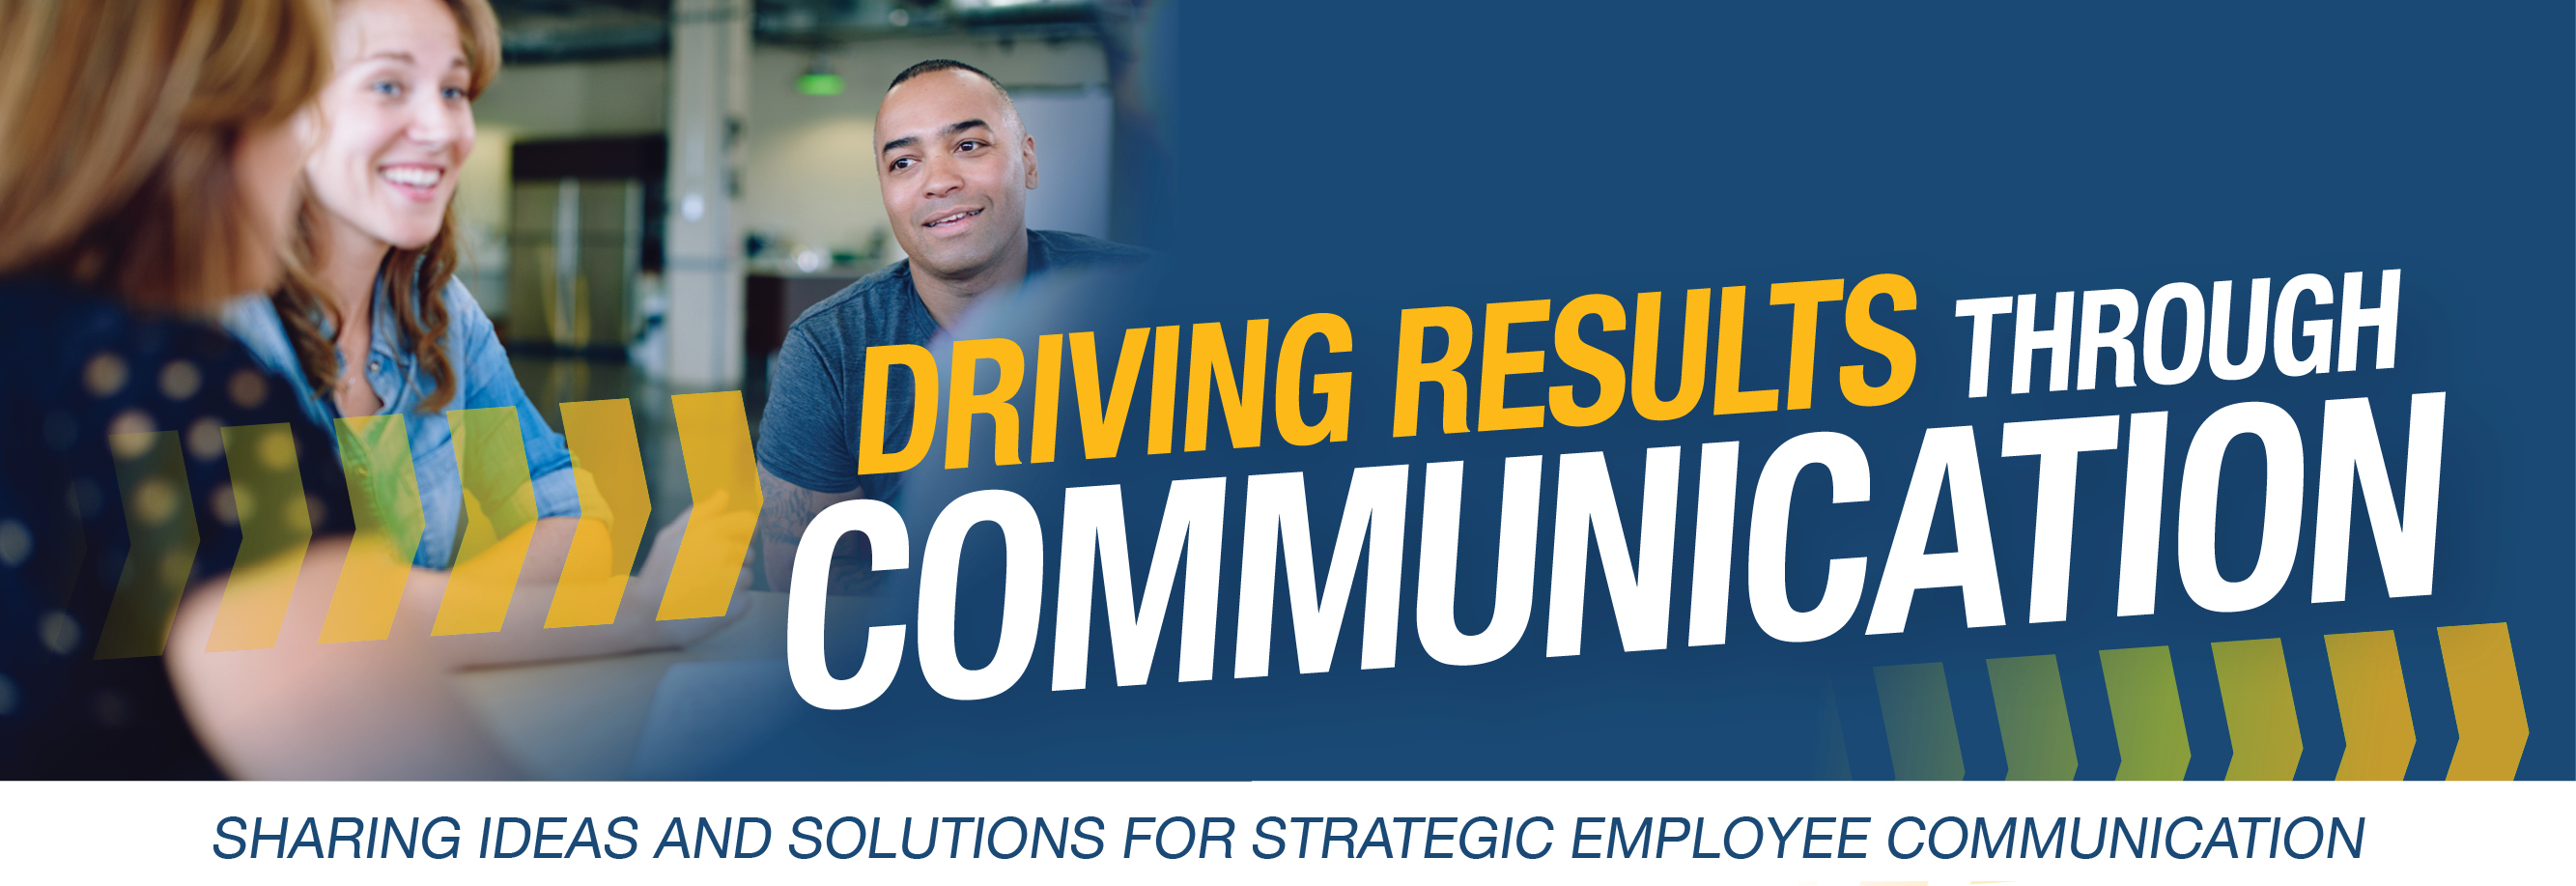 Tip #3 – Driving Results Through Communication